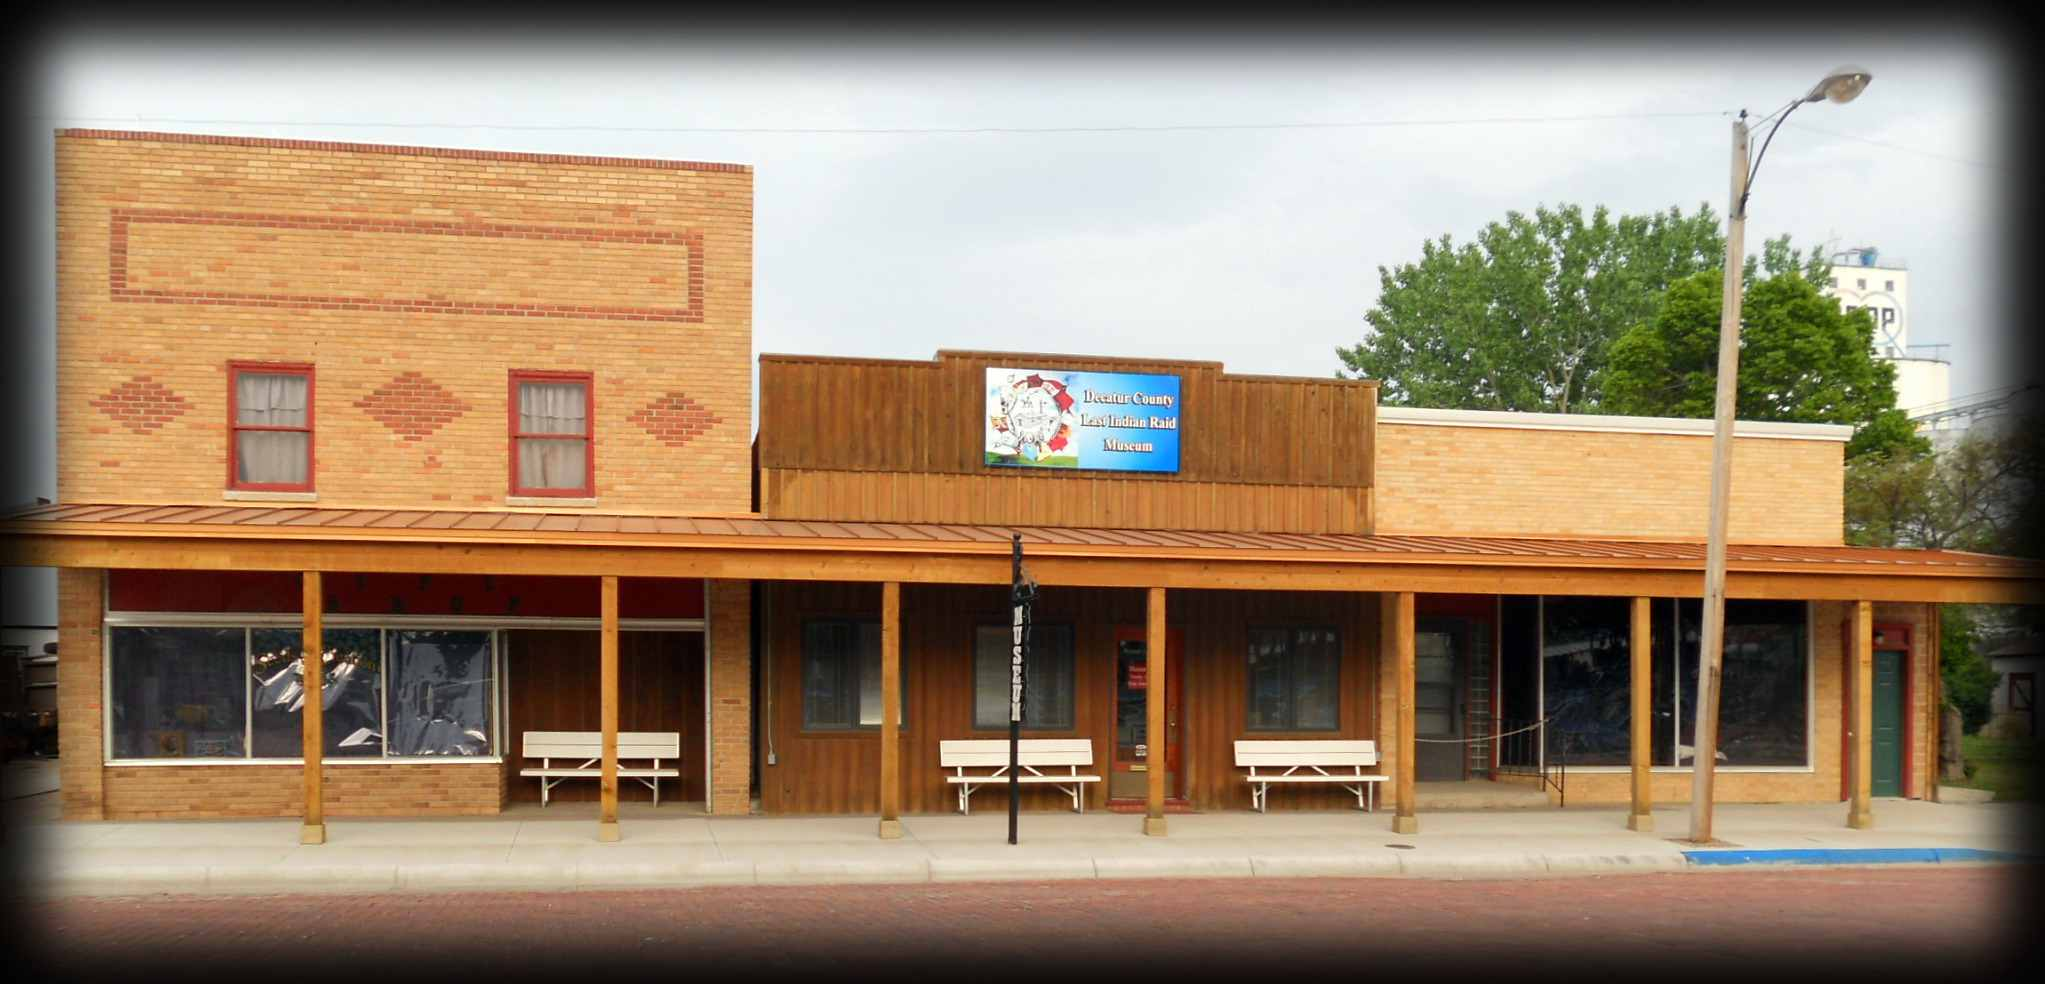 The Decatur County Last Indian Raid Museum in beautiful downtown Oberlin, Kansas